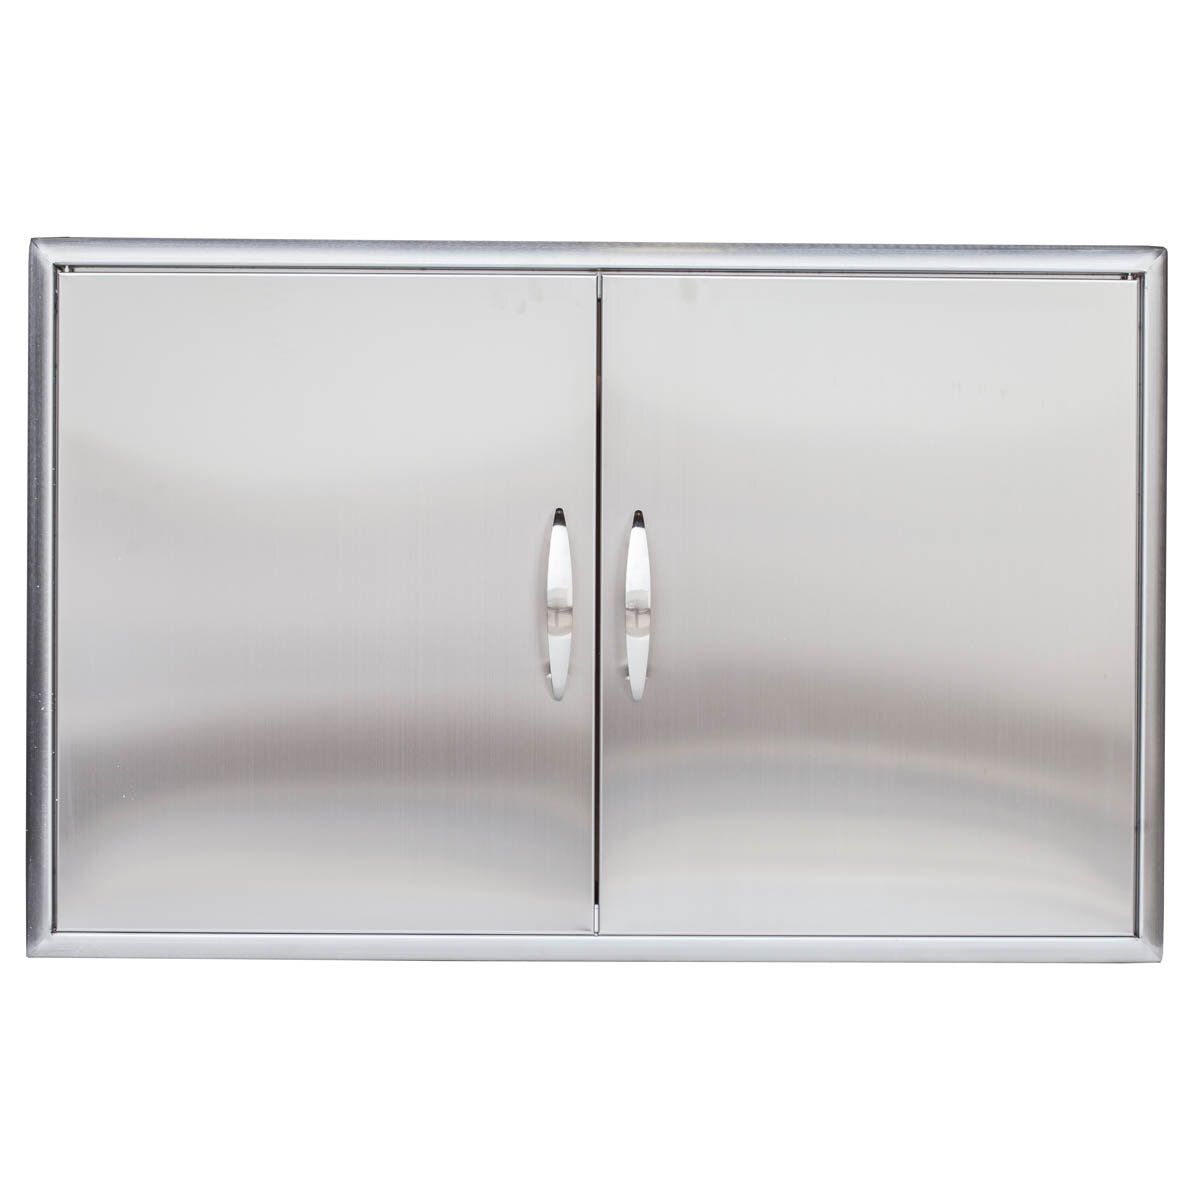 1200 #5D636E Barbeques Galore Stainless Steel Double Access Door BBQG1014 save image Stainless Steel Entrance Doors 47371200